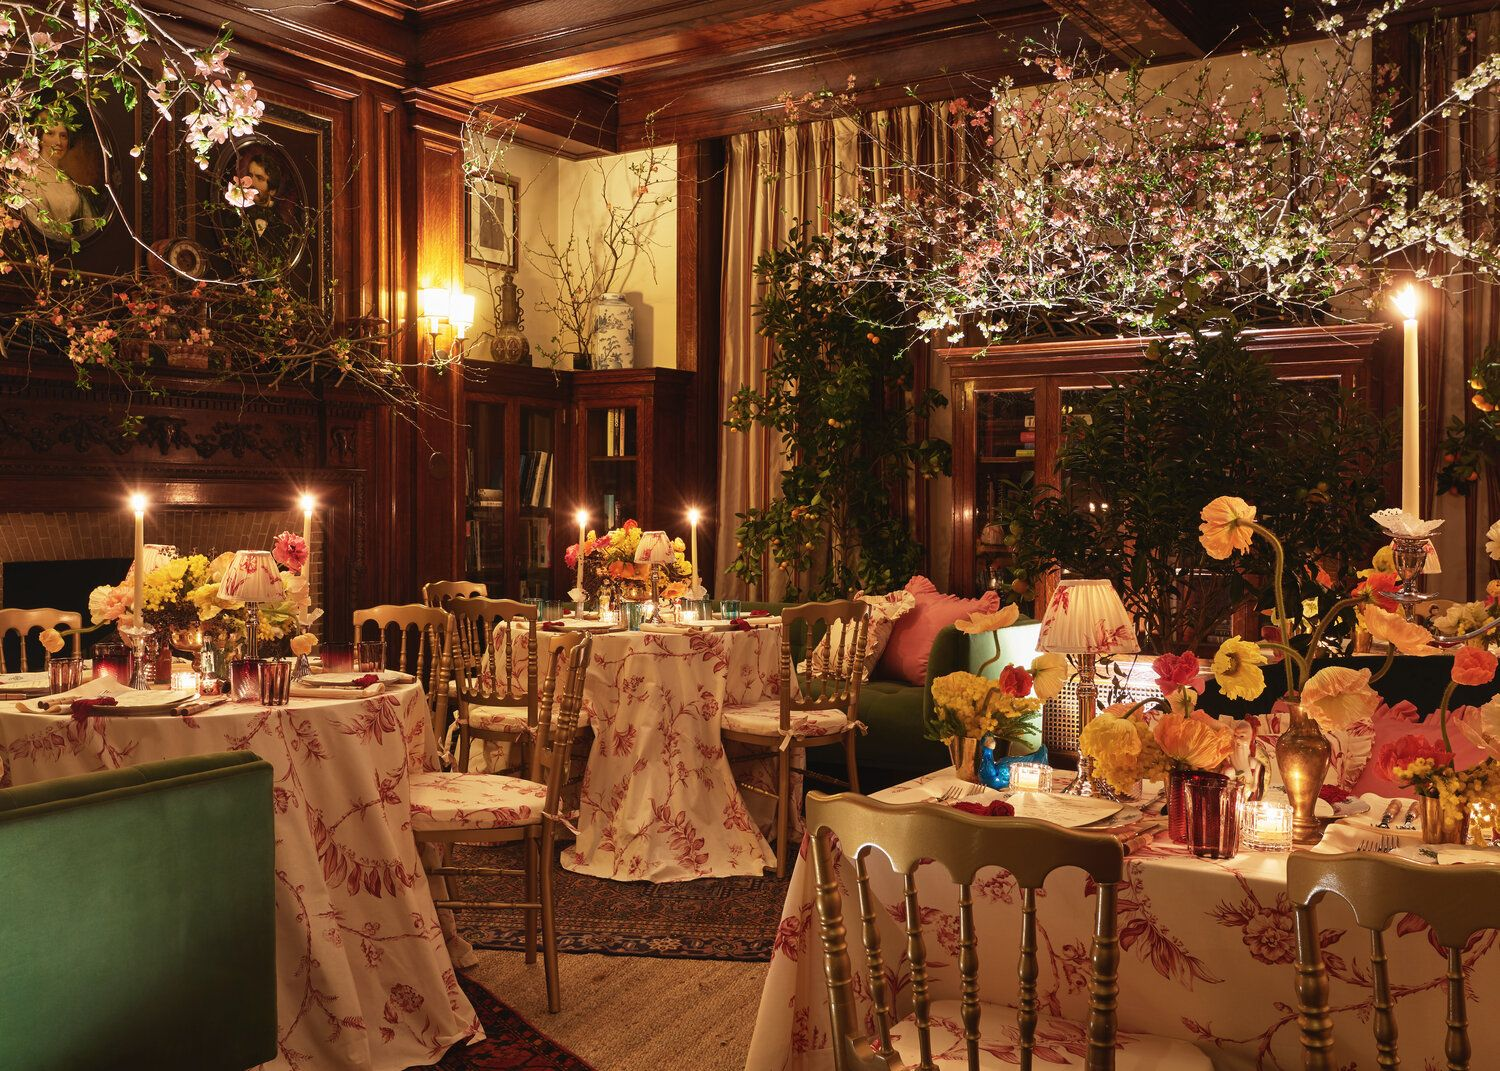 Party Setting Styled Dining Room Gold Chairs Floral